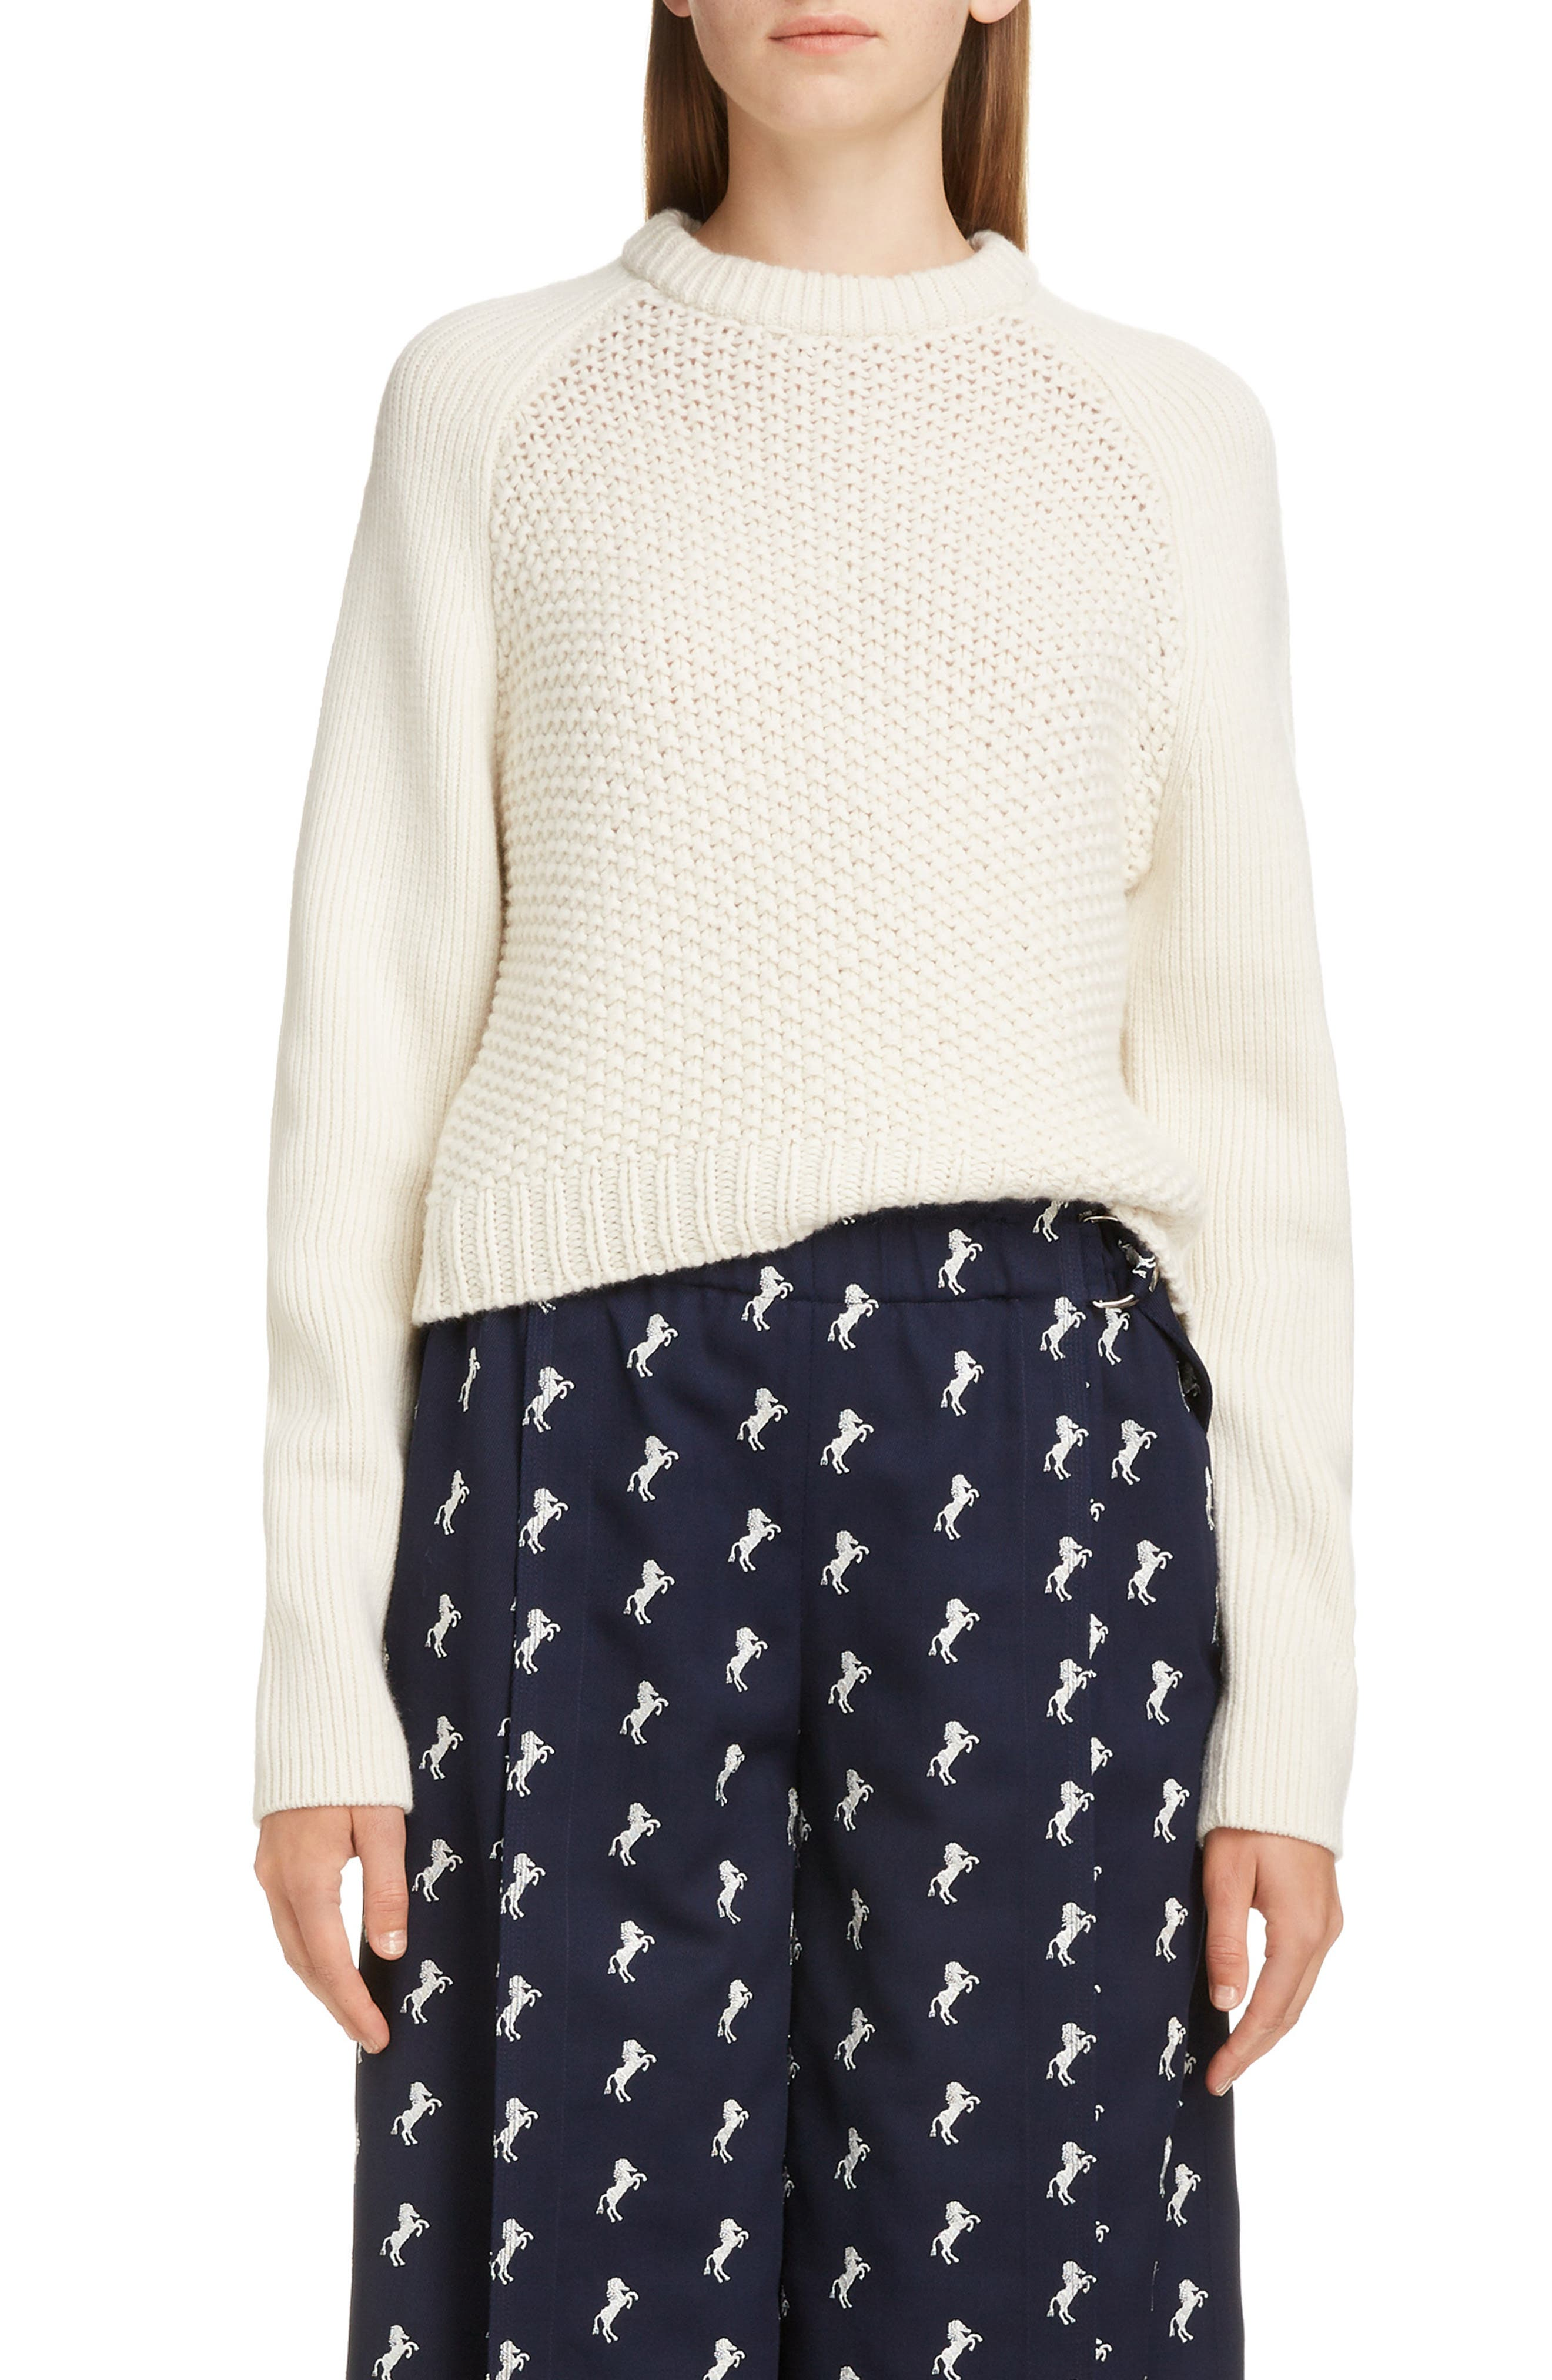 Mixed Knit Wool & Cashmere Blend Sweater, Main, color, PRISTINE WHITE